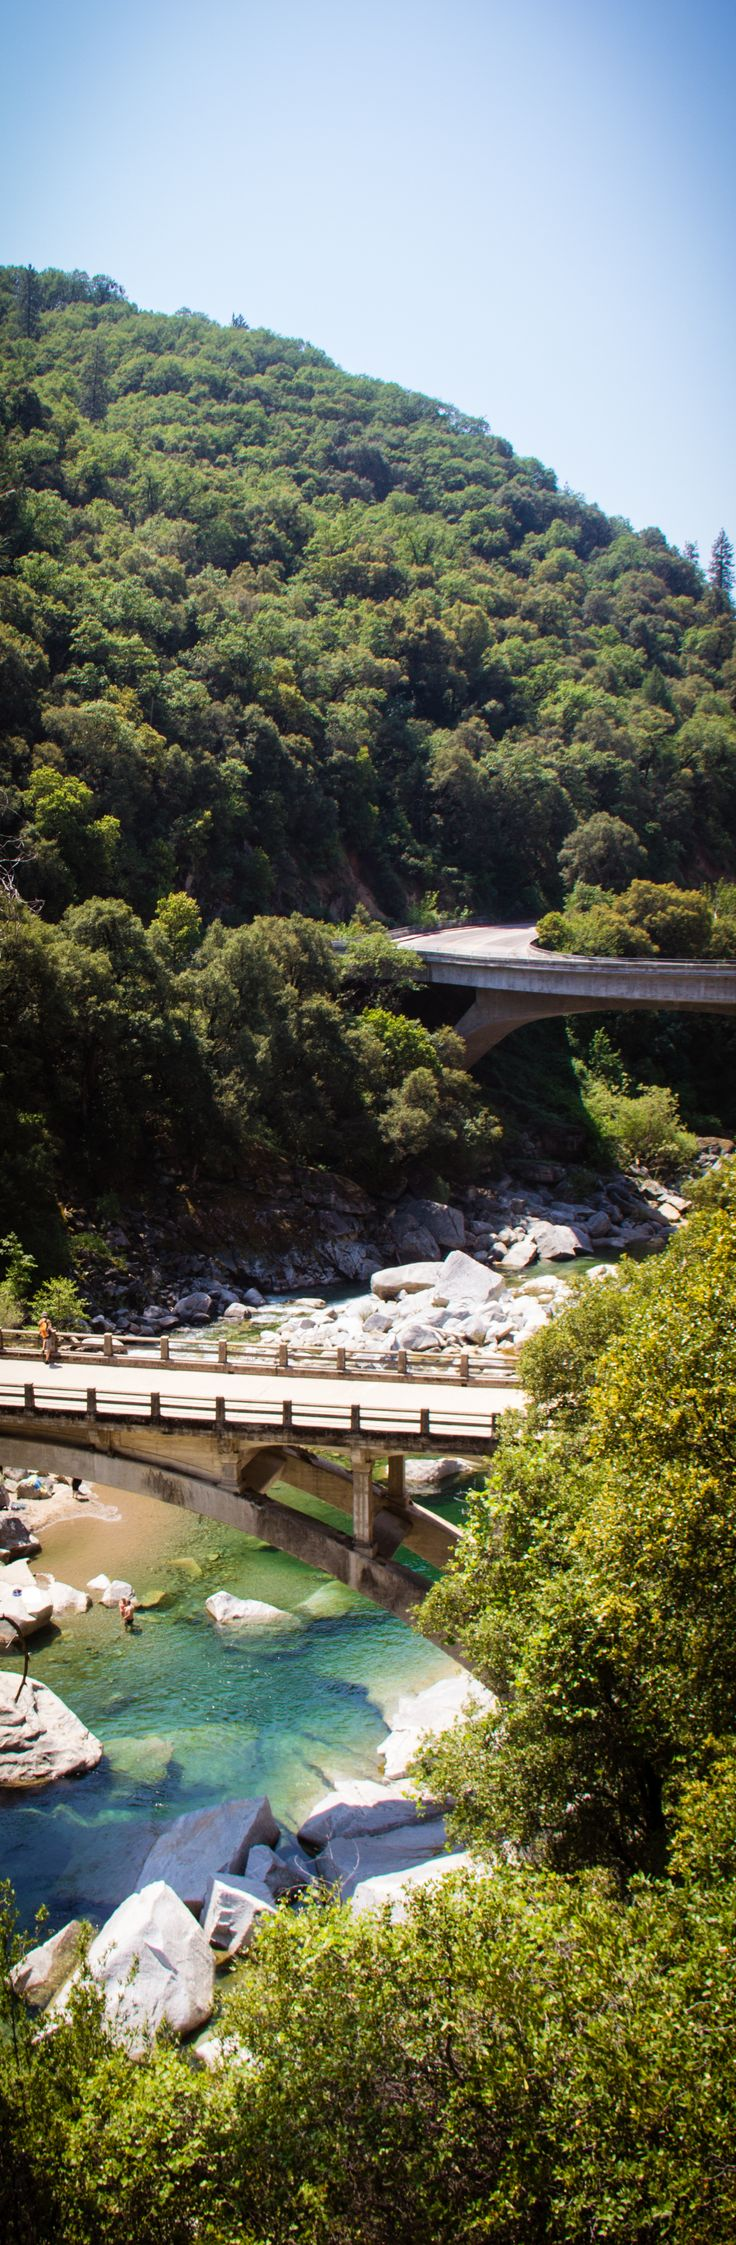 16 Best Images About Swimming Holes In No Cal On Pinterest Gopro Summer Photos And Sacramento